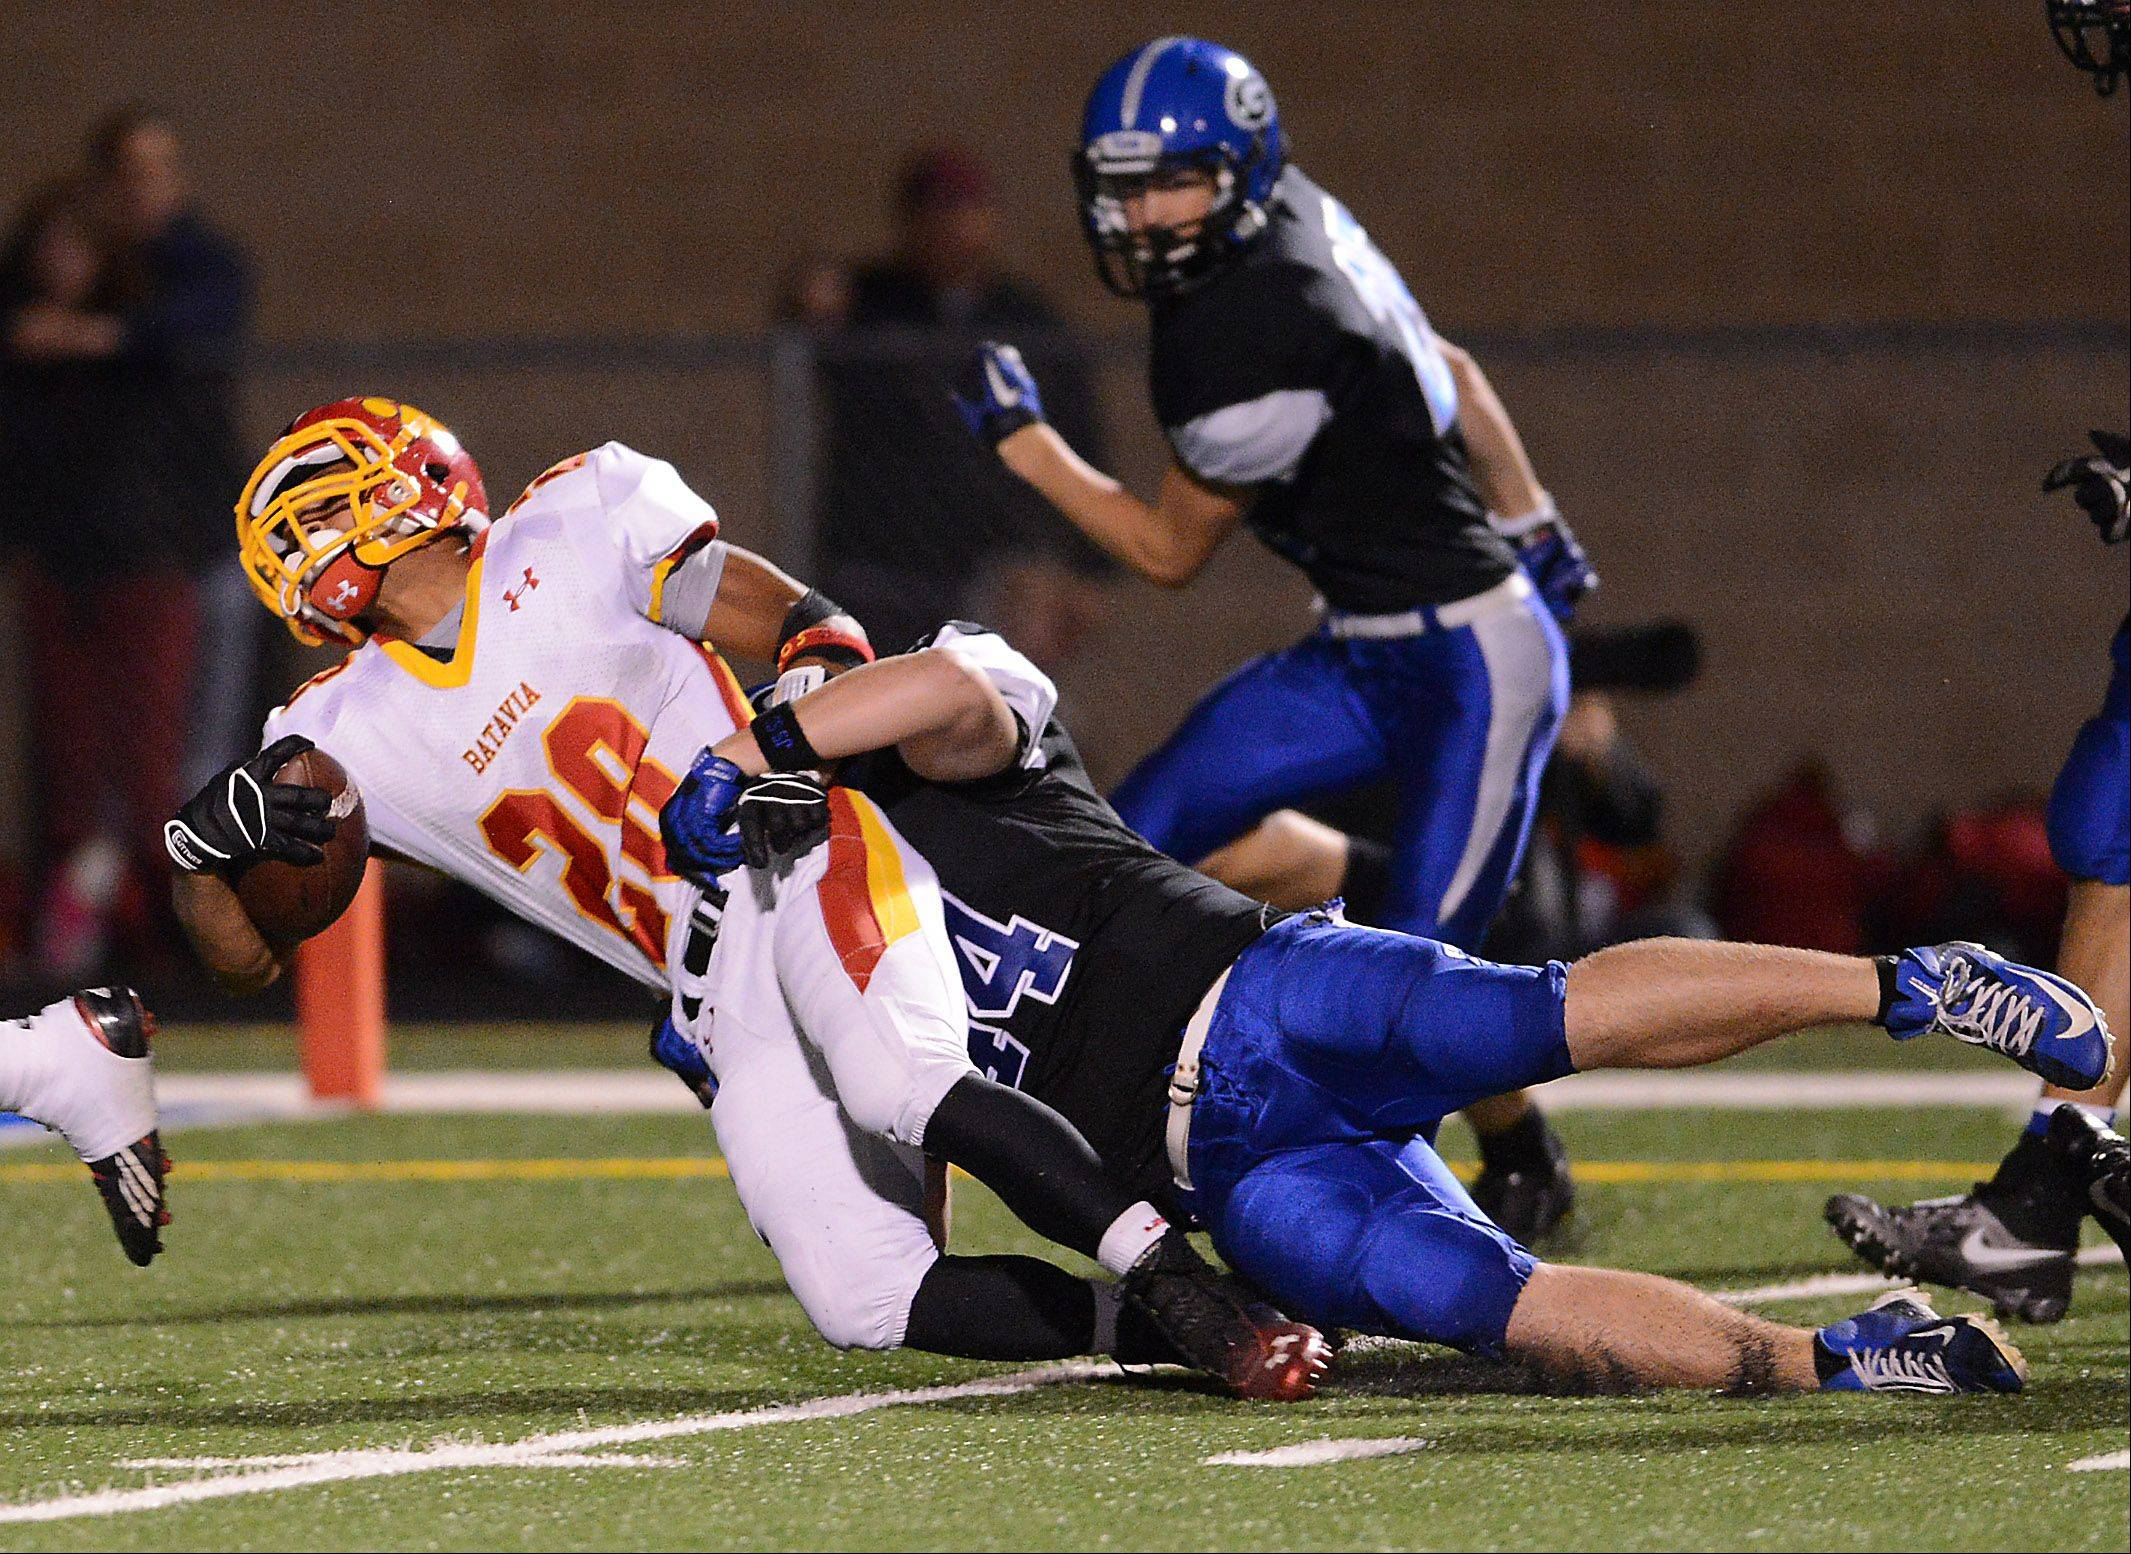 Week 3 - Images from the Geneva vs. Batavia football game Friday, September 13, 2013.